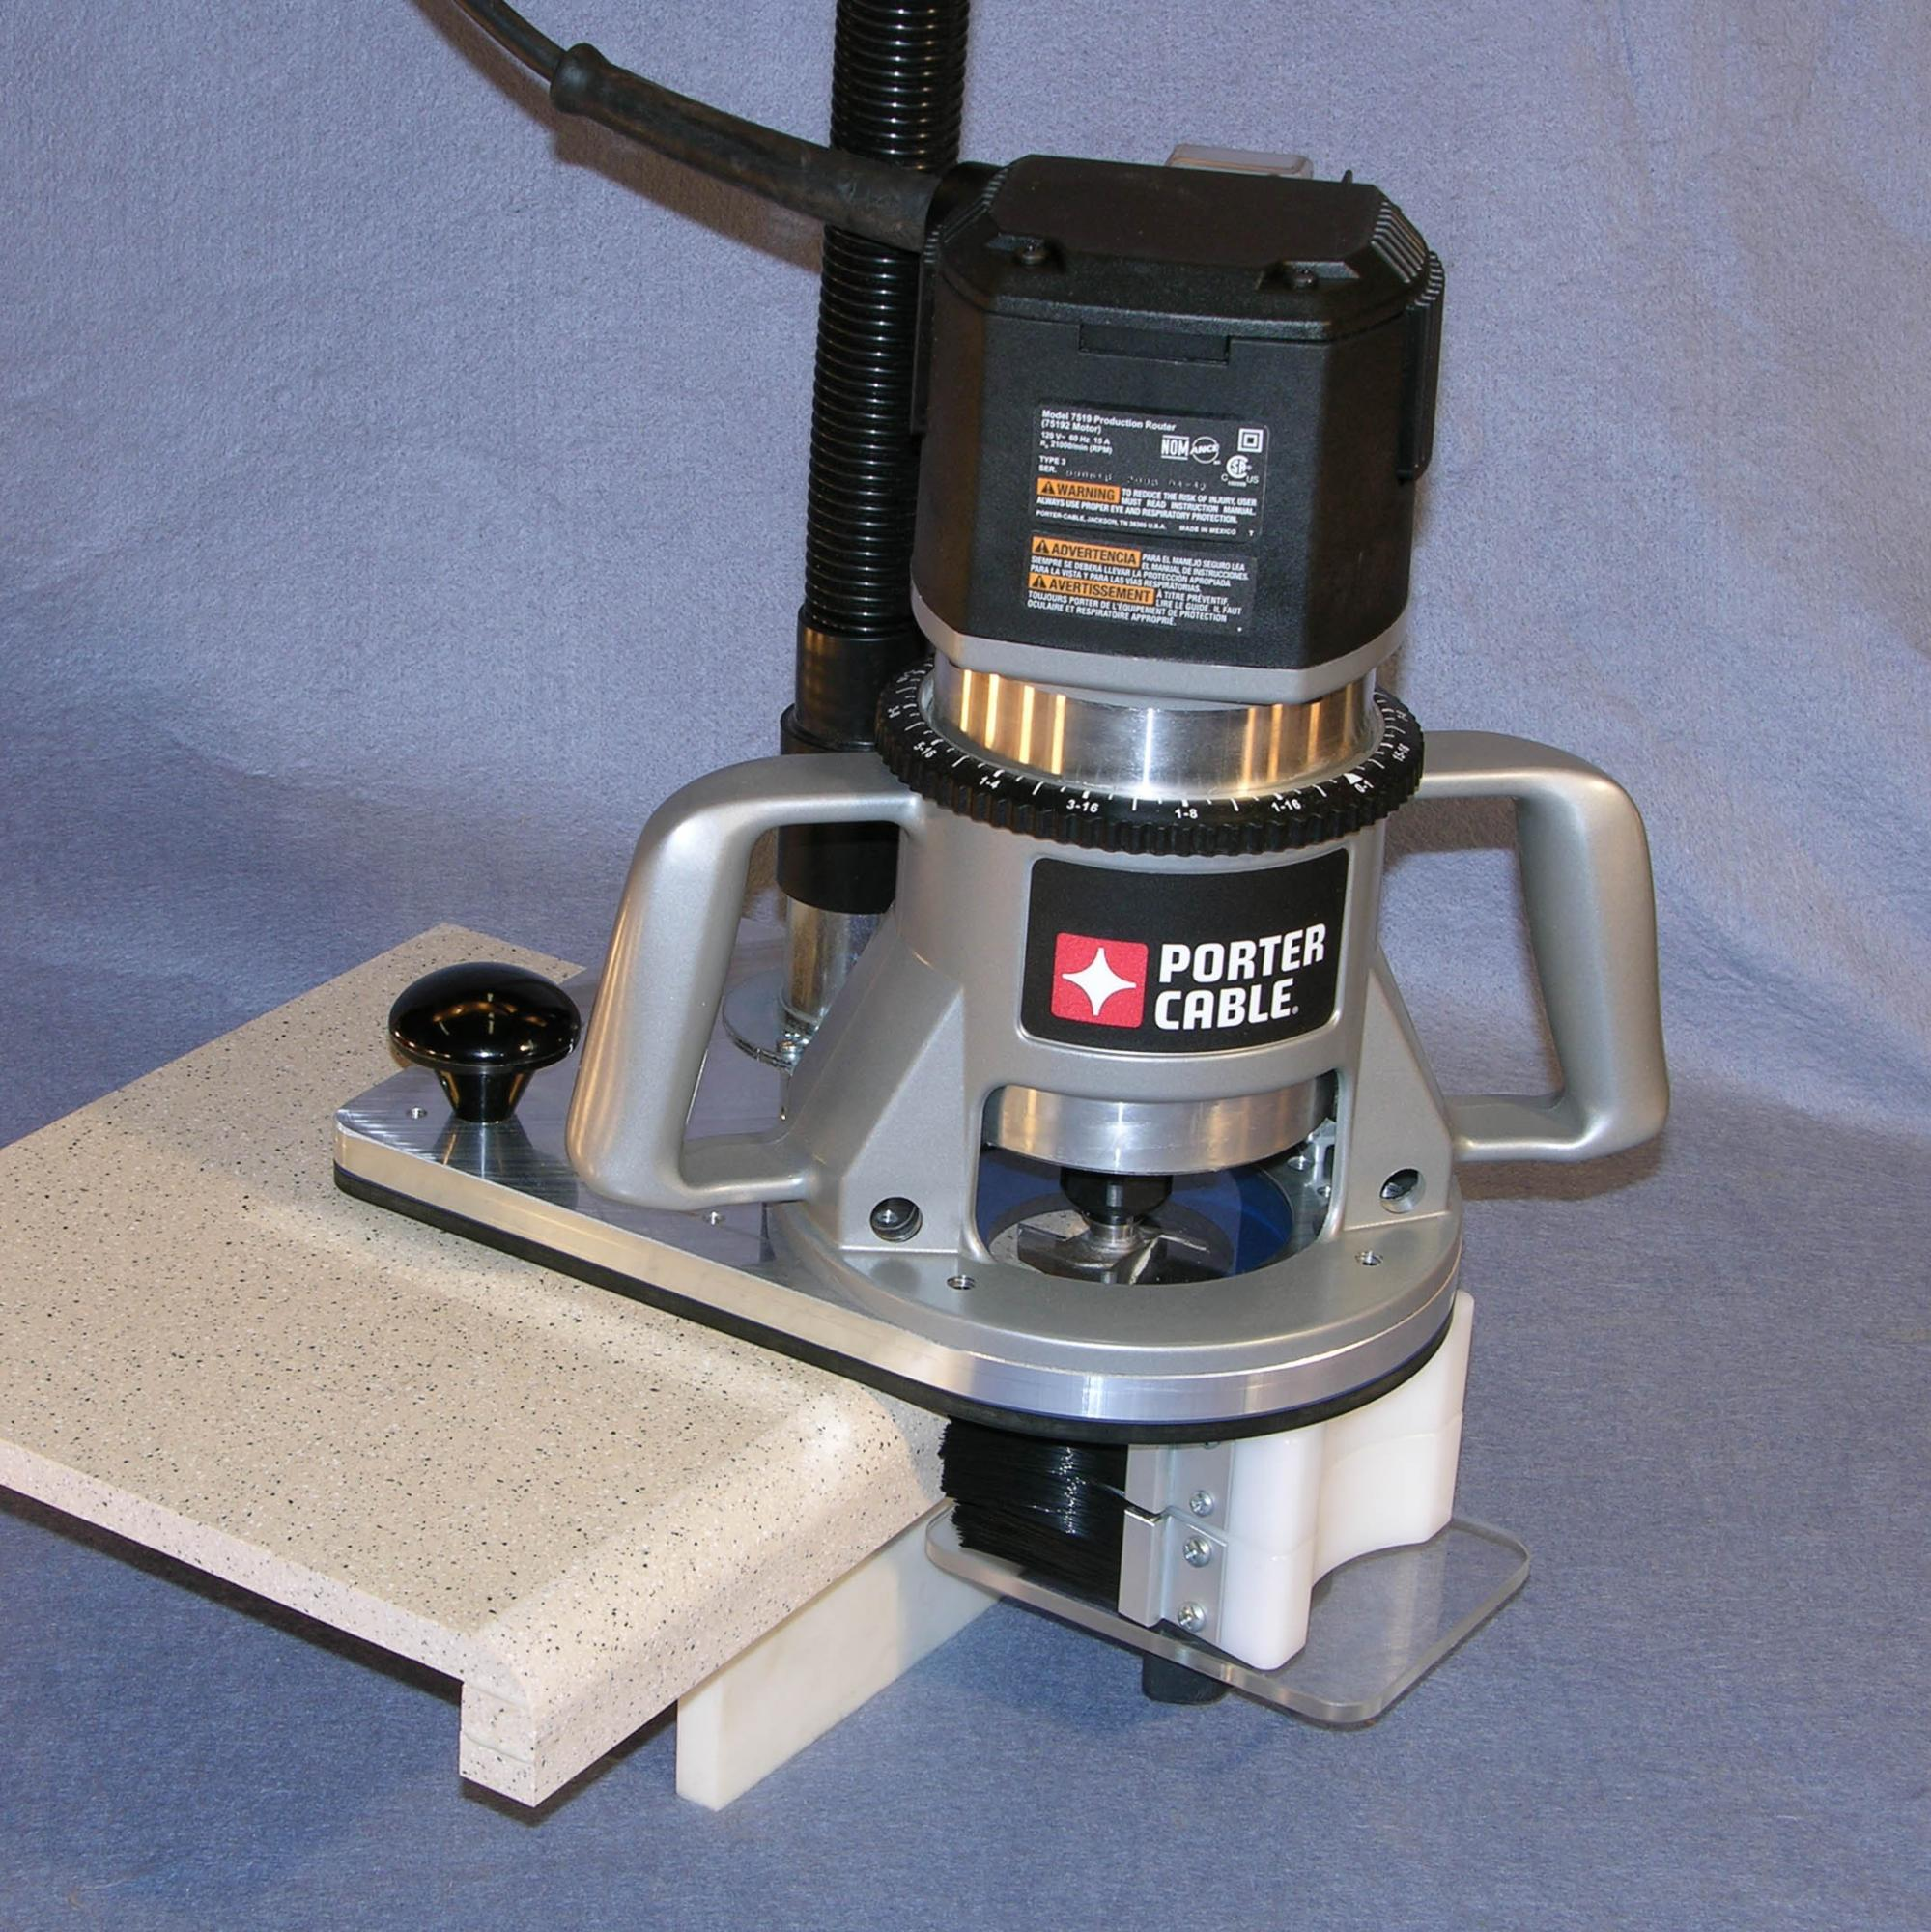 Reconsidering router table dust collection router forums attached thumbnails click image for larger version name stacc vac 7519 sam ss emg greentooth Image collections